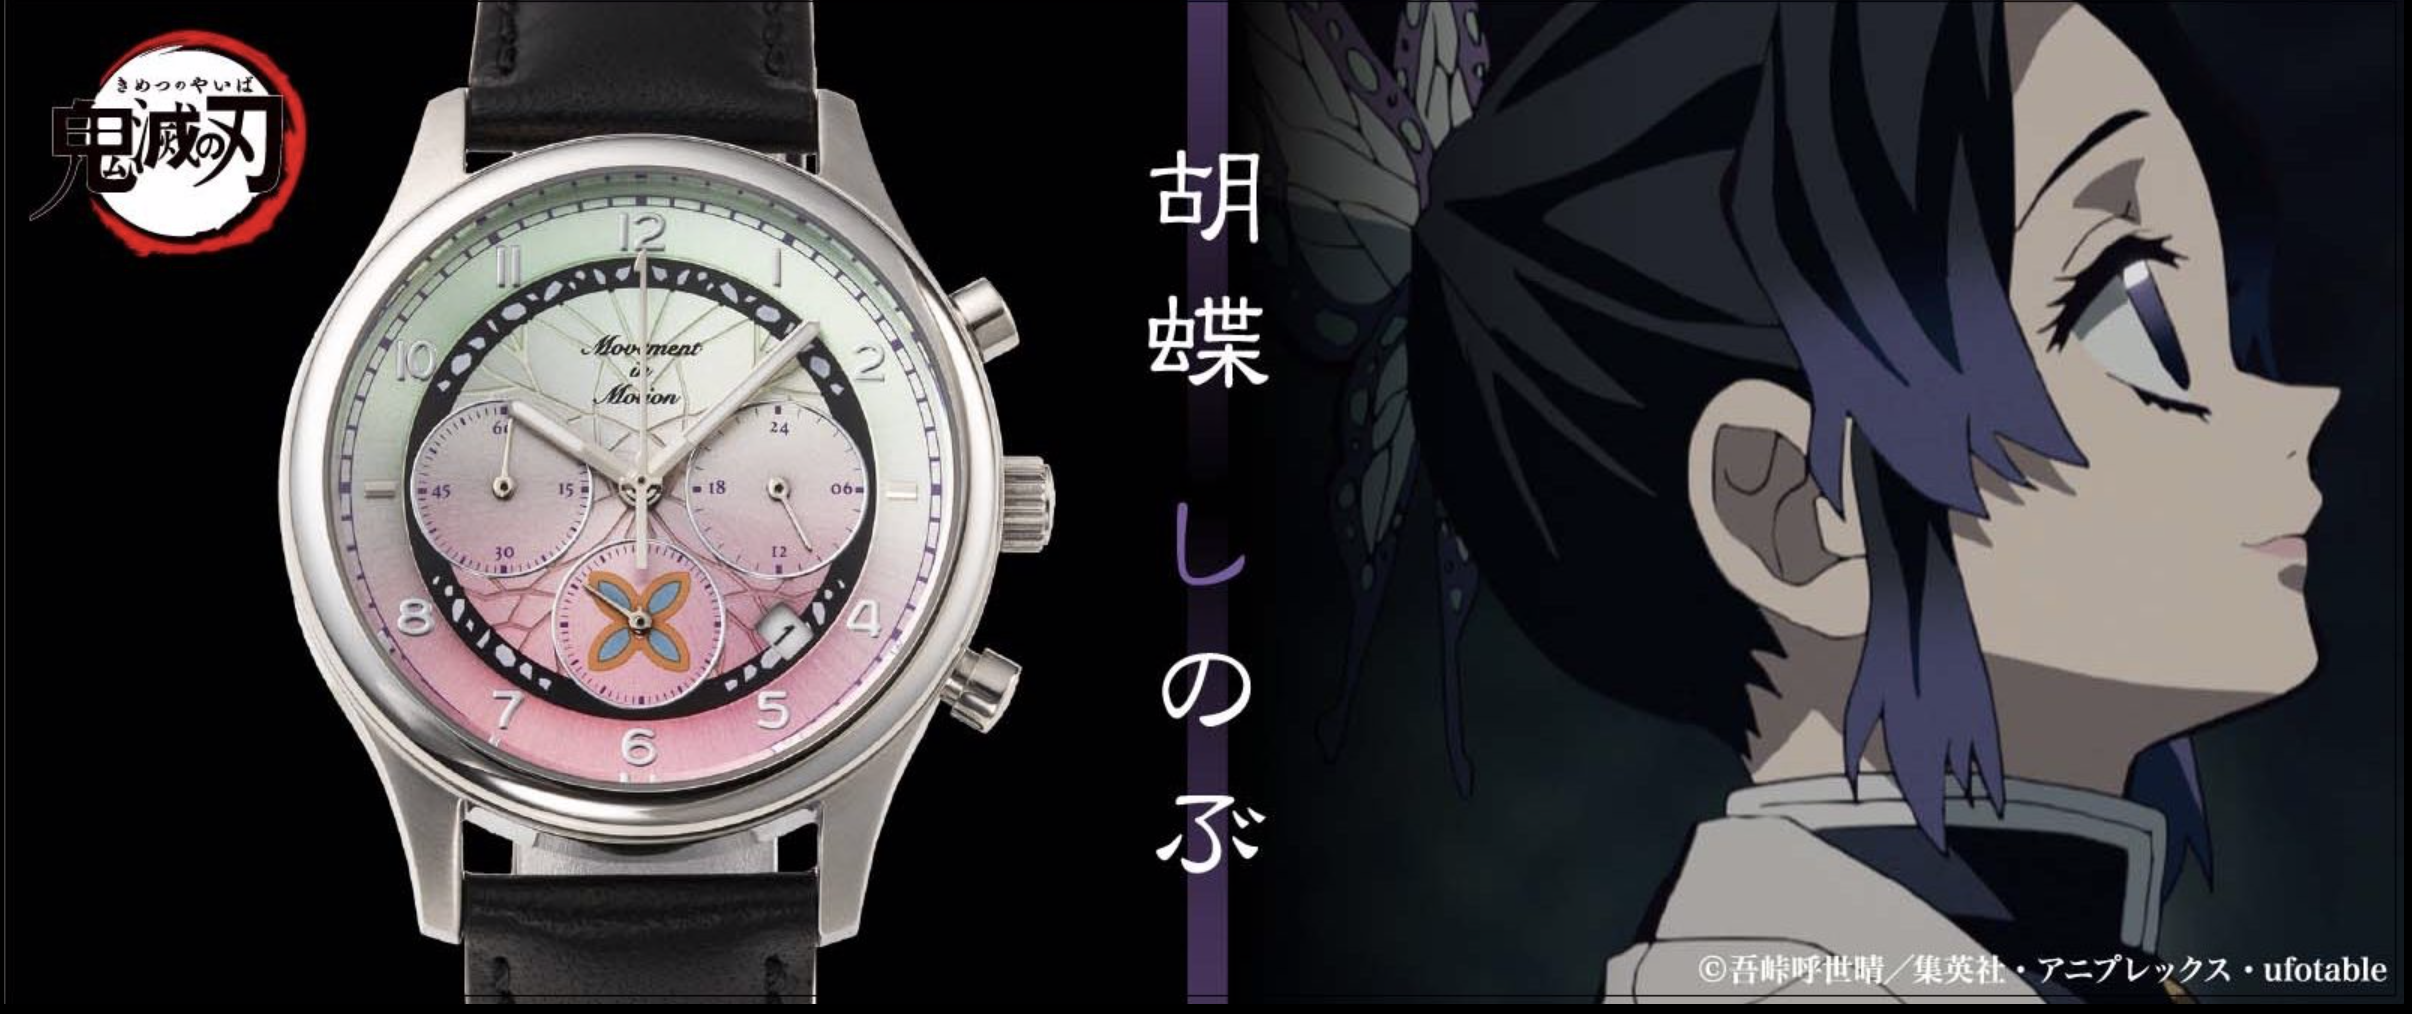 Shinobu watch